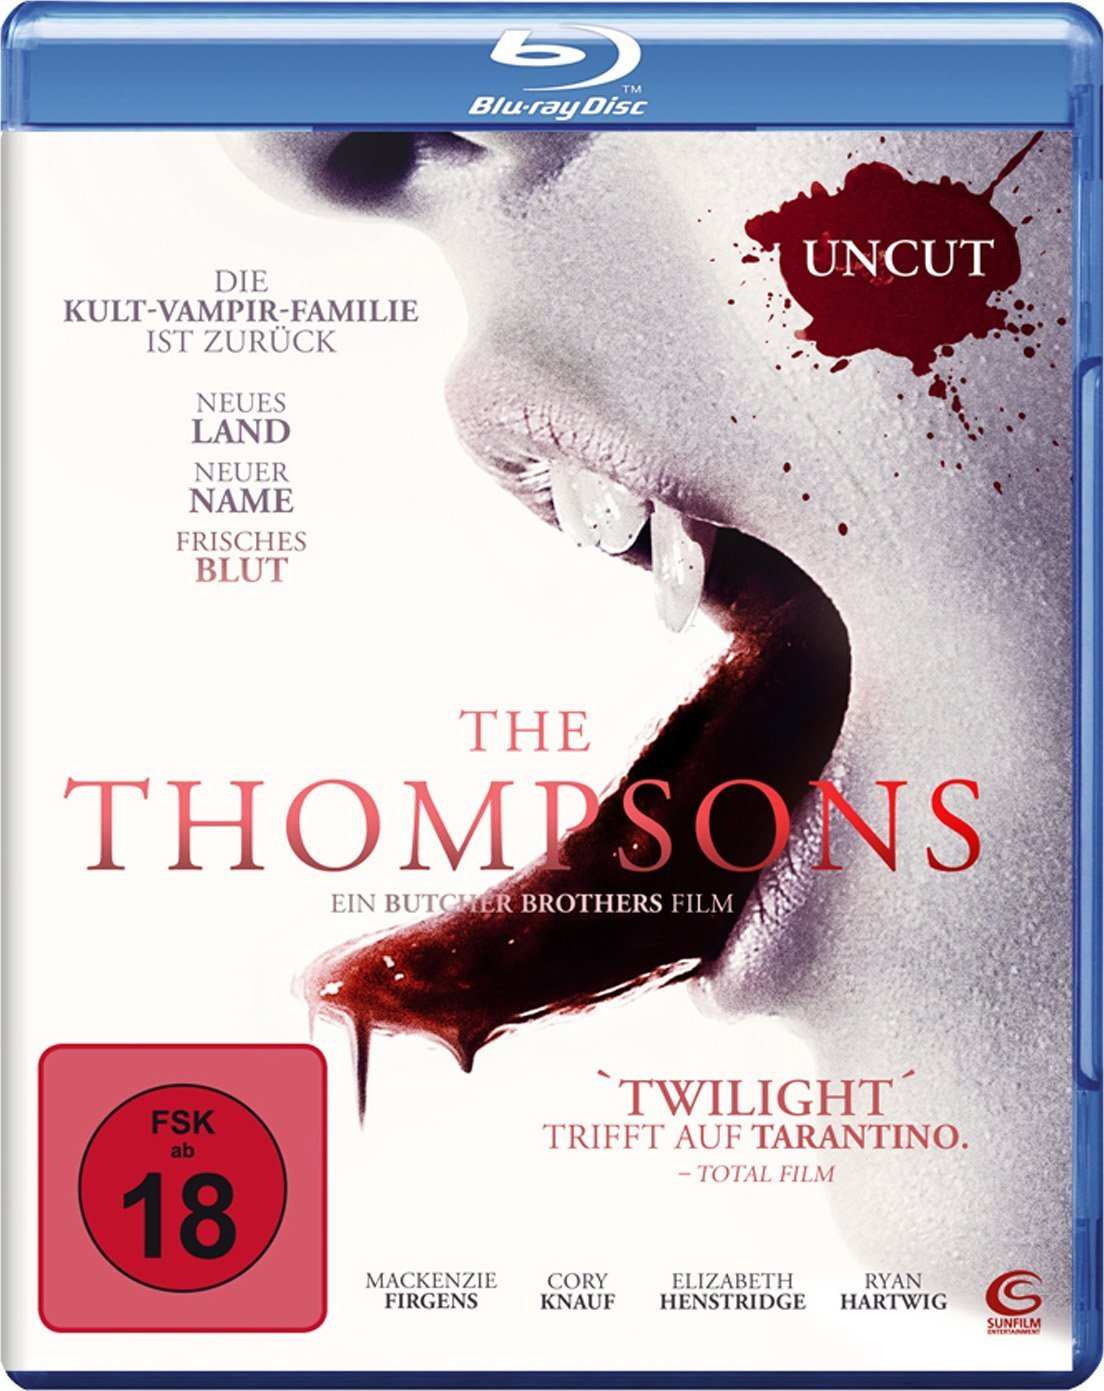 the thompsons (2012) full movie